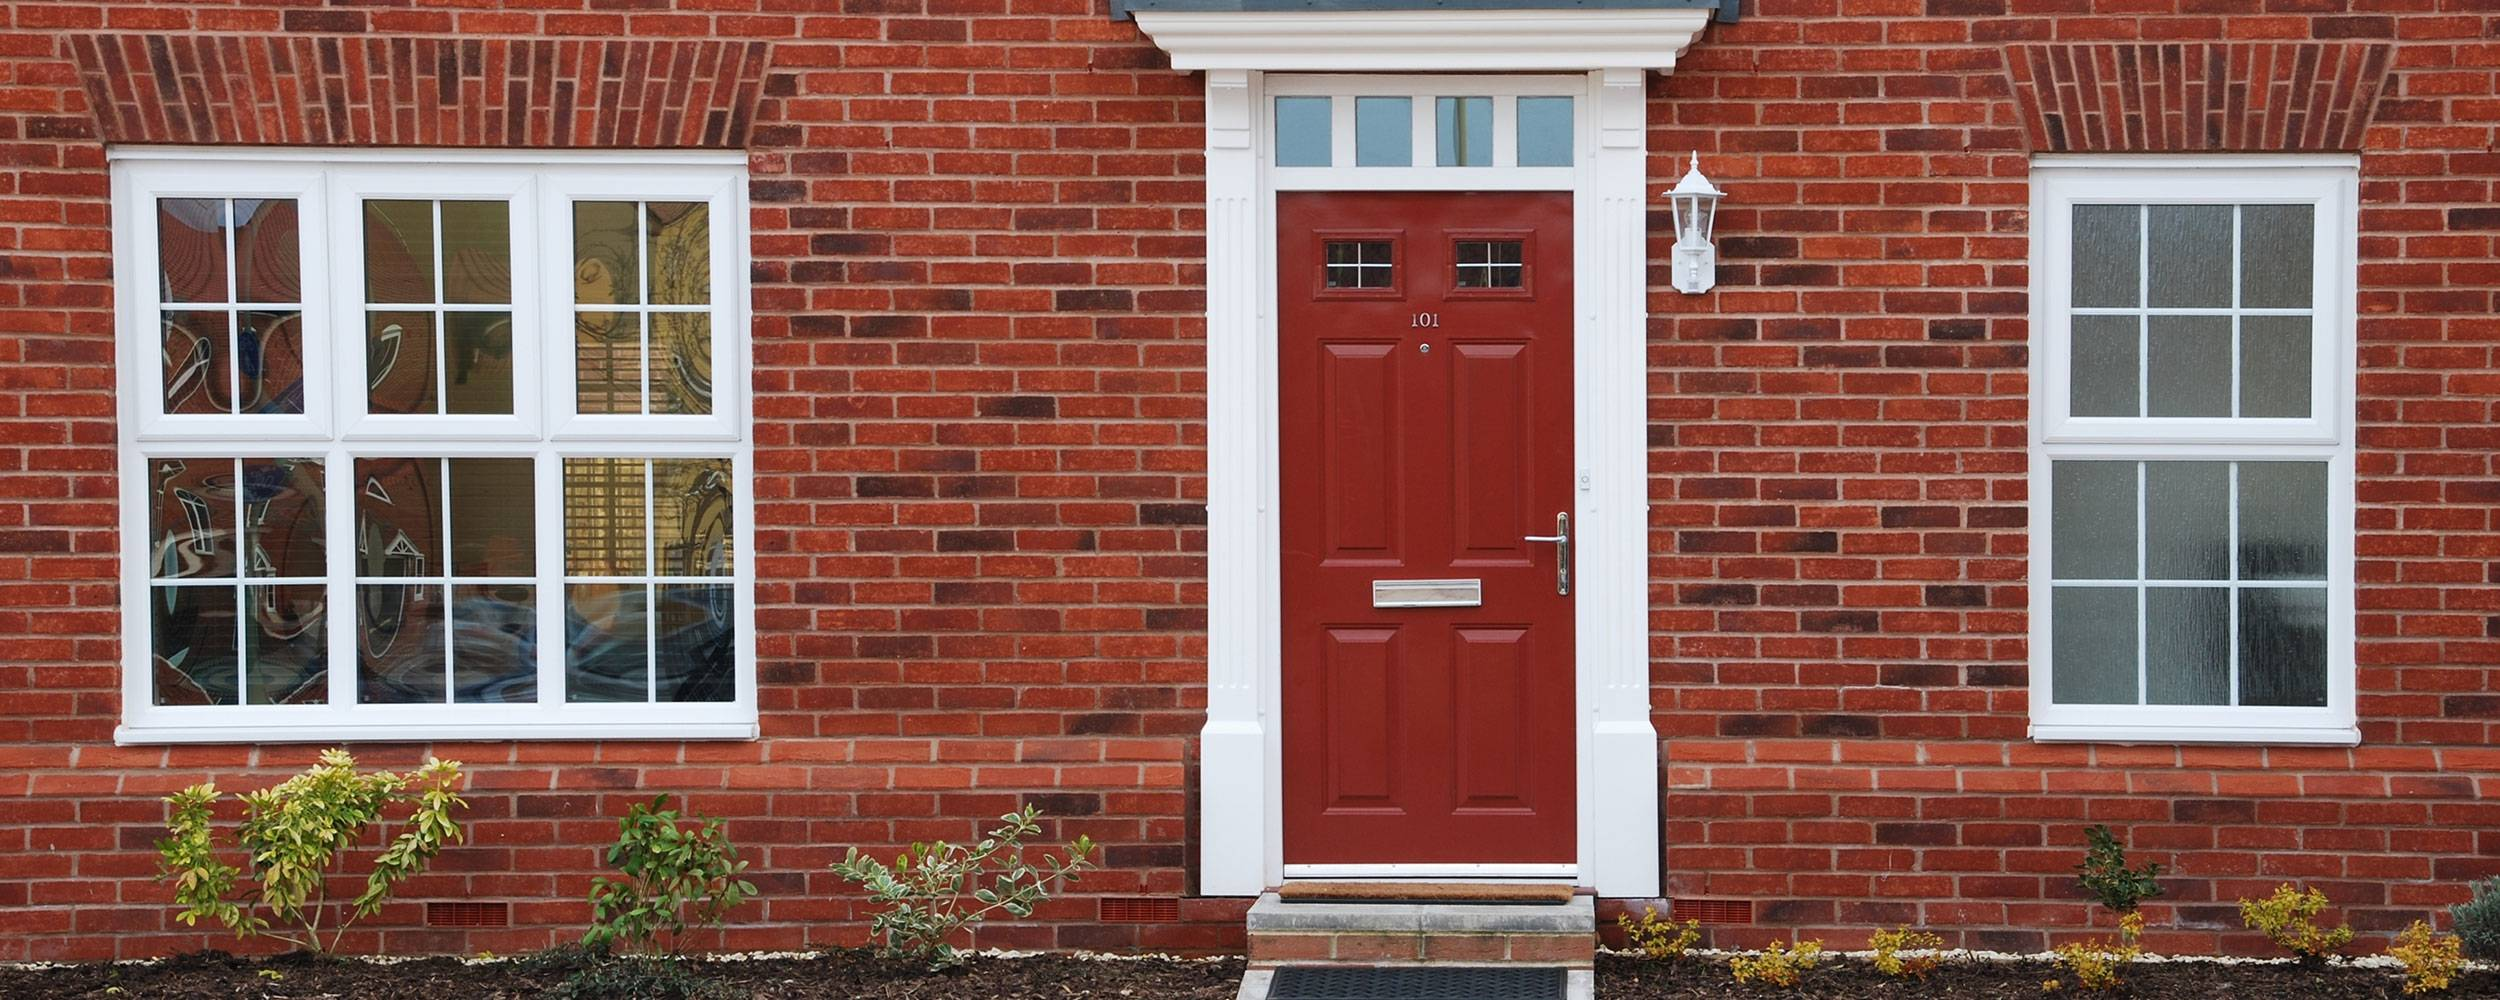 Red front door on front of modern red brick house